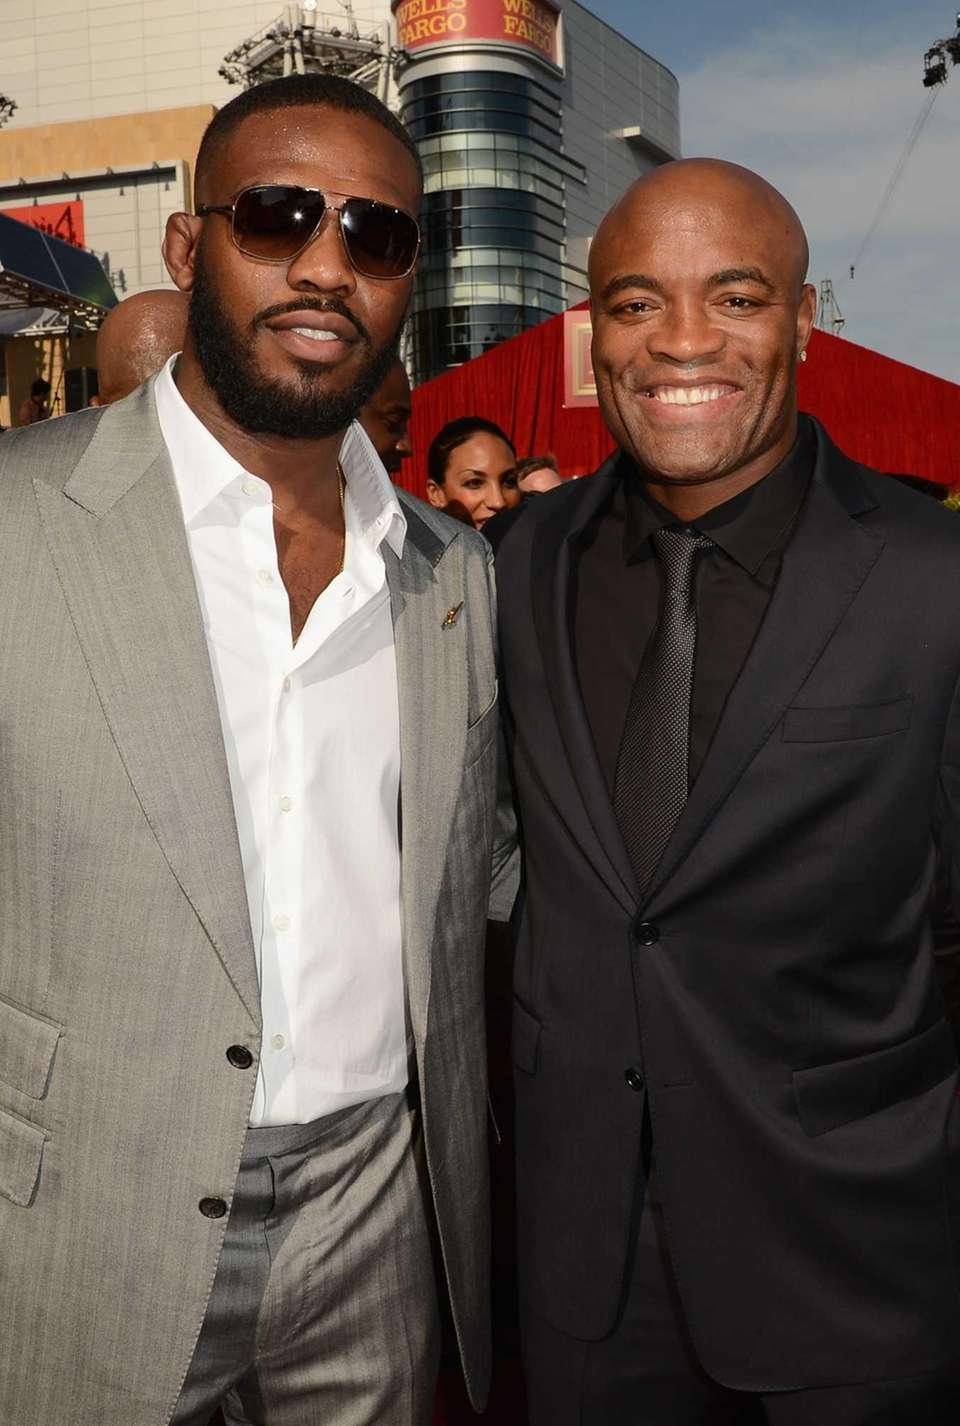 UFC Fighters Jon Jones and Anderson Silva arrive